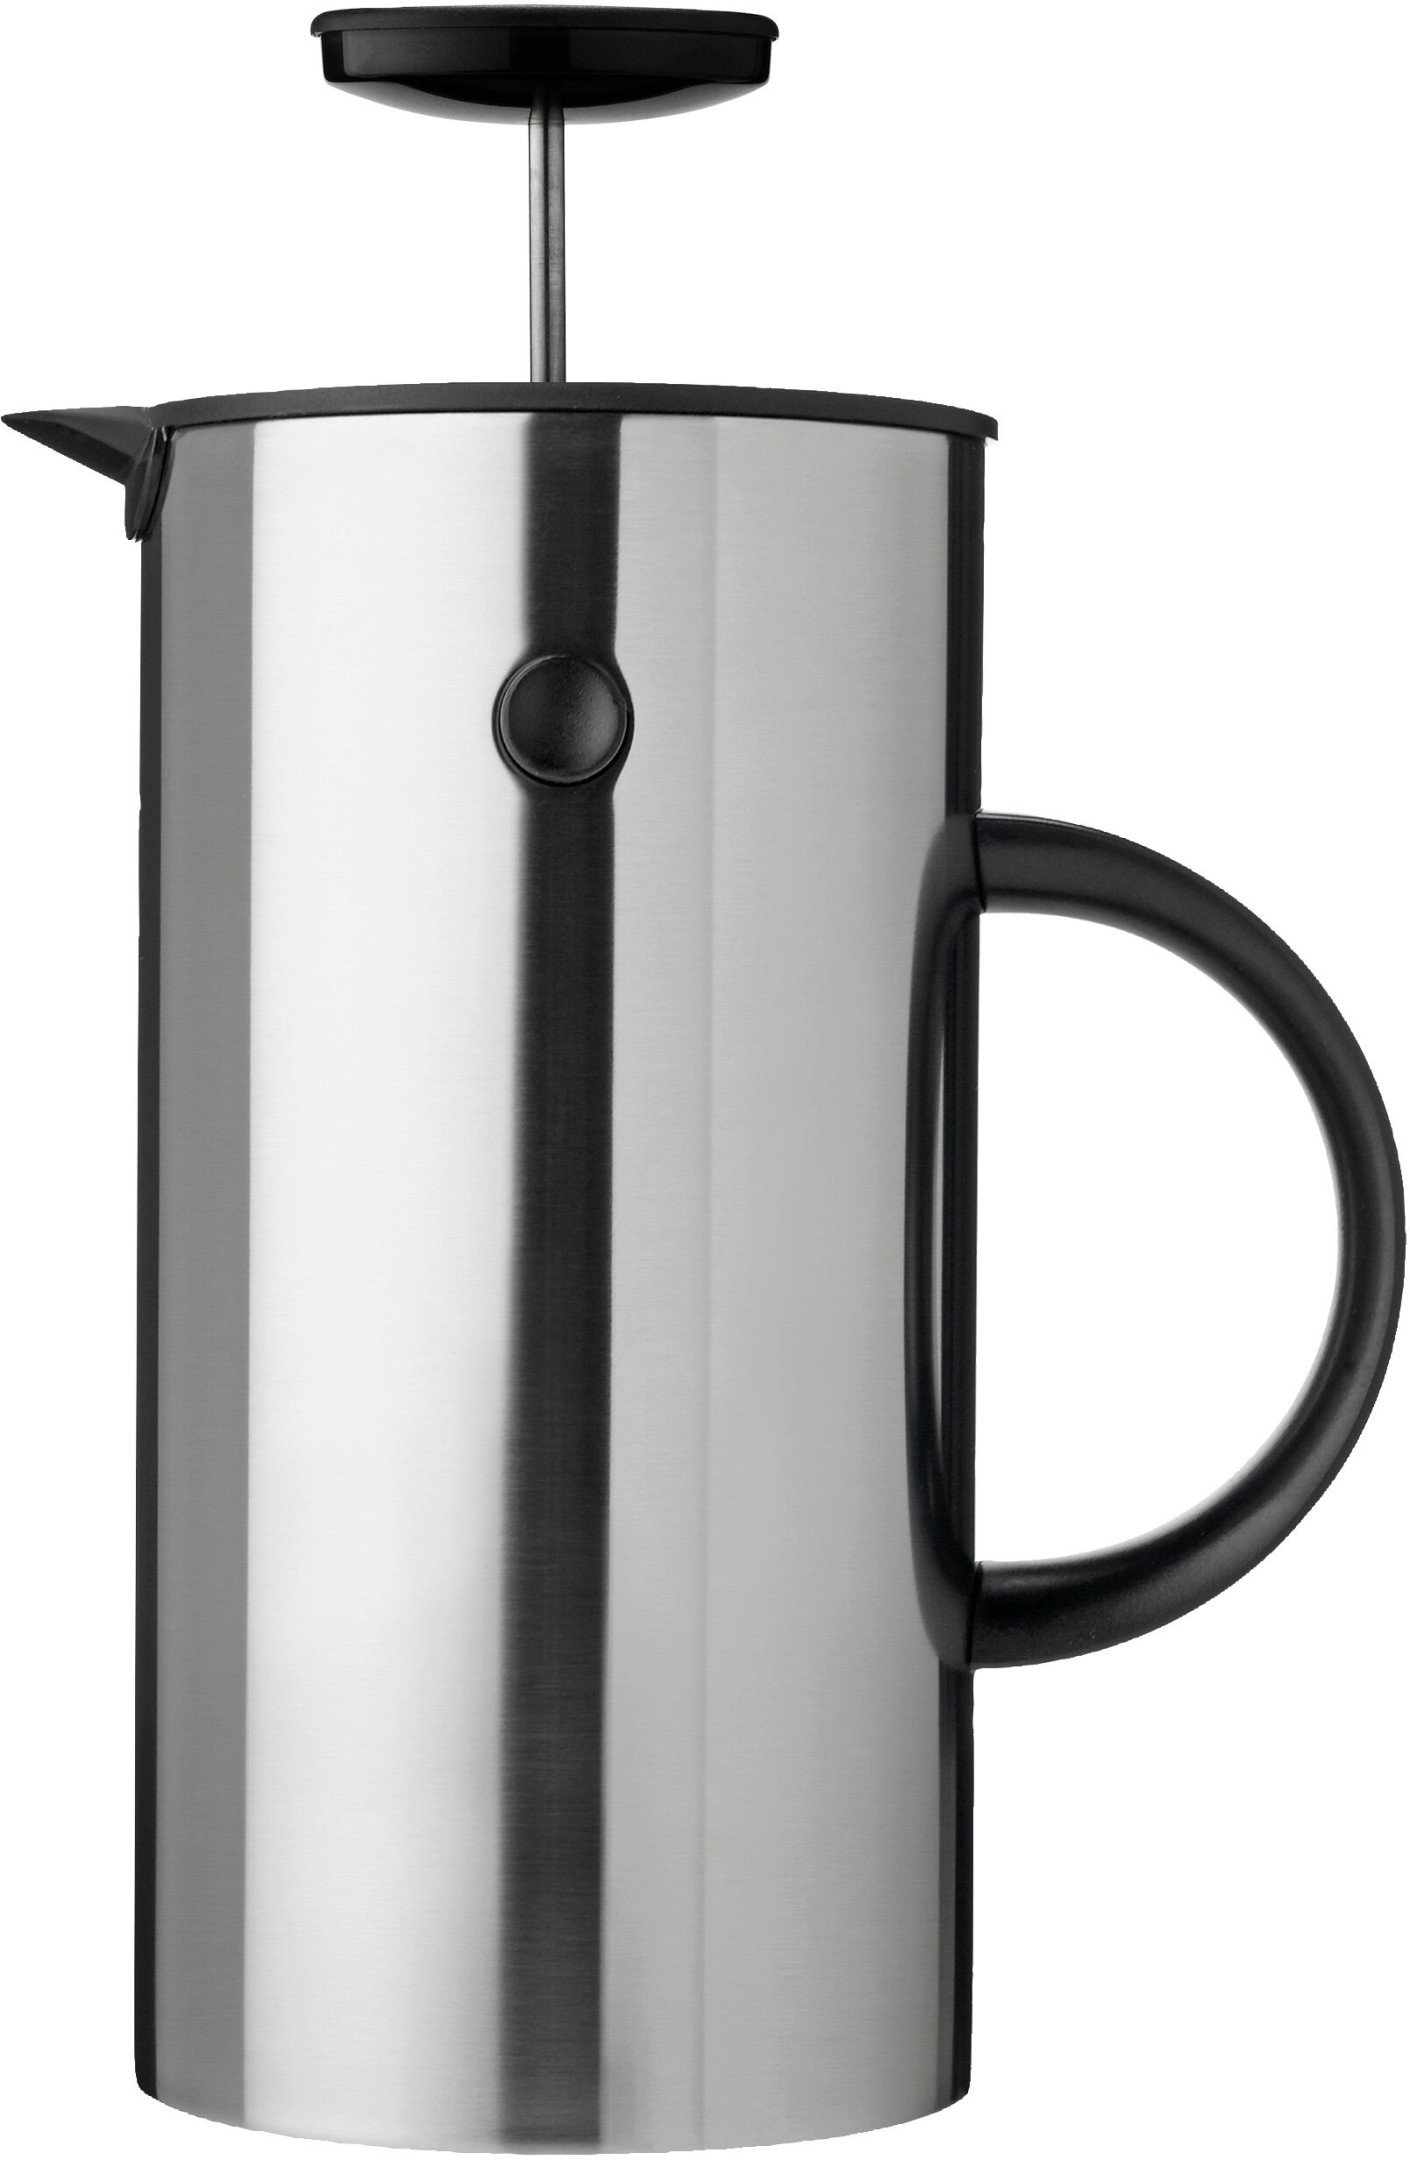 EM Press Coffee Maker Steel 1L by E. Magnussen, Stelton